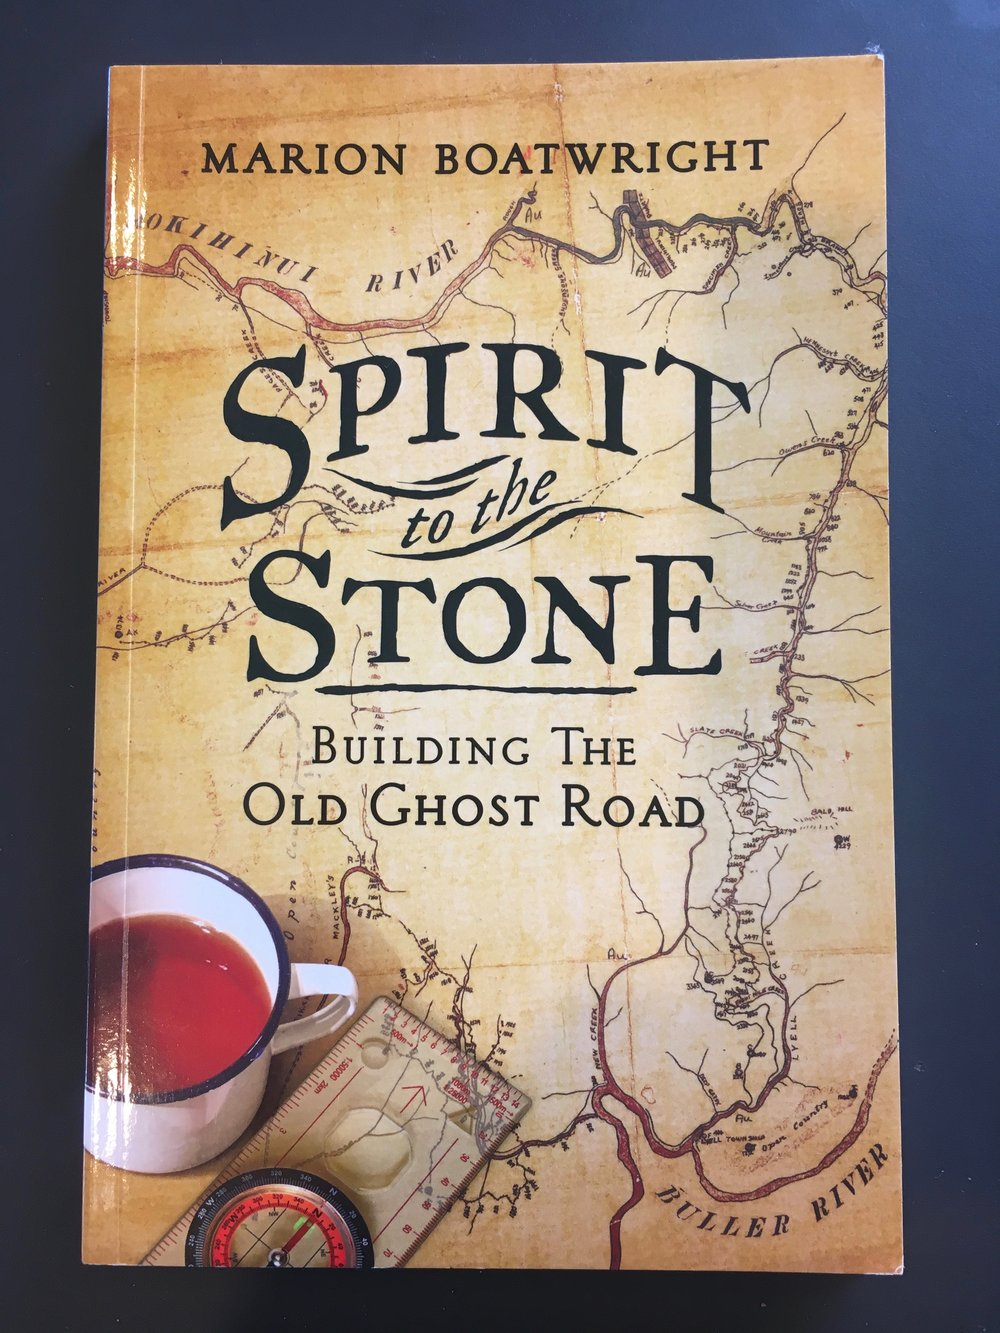 The Old Ghost Road book